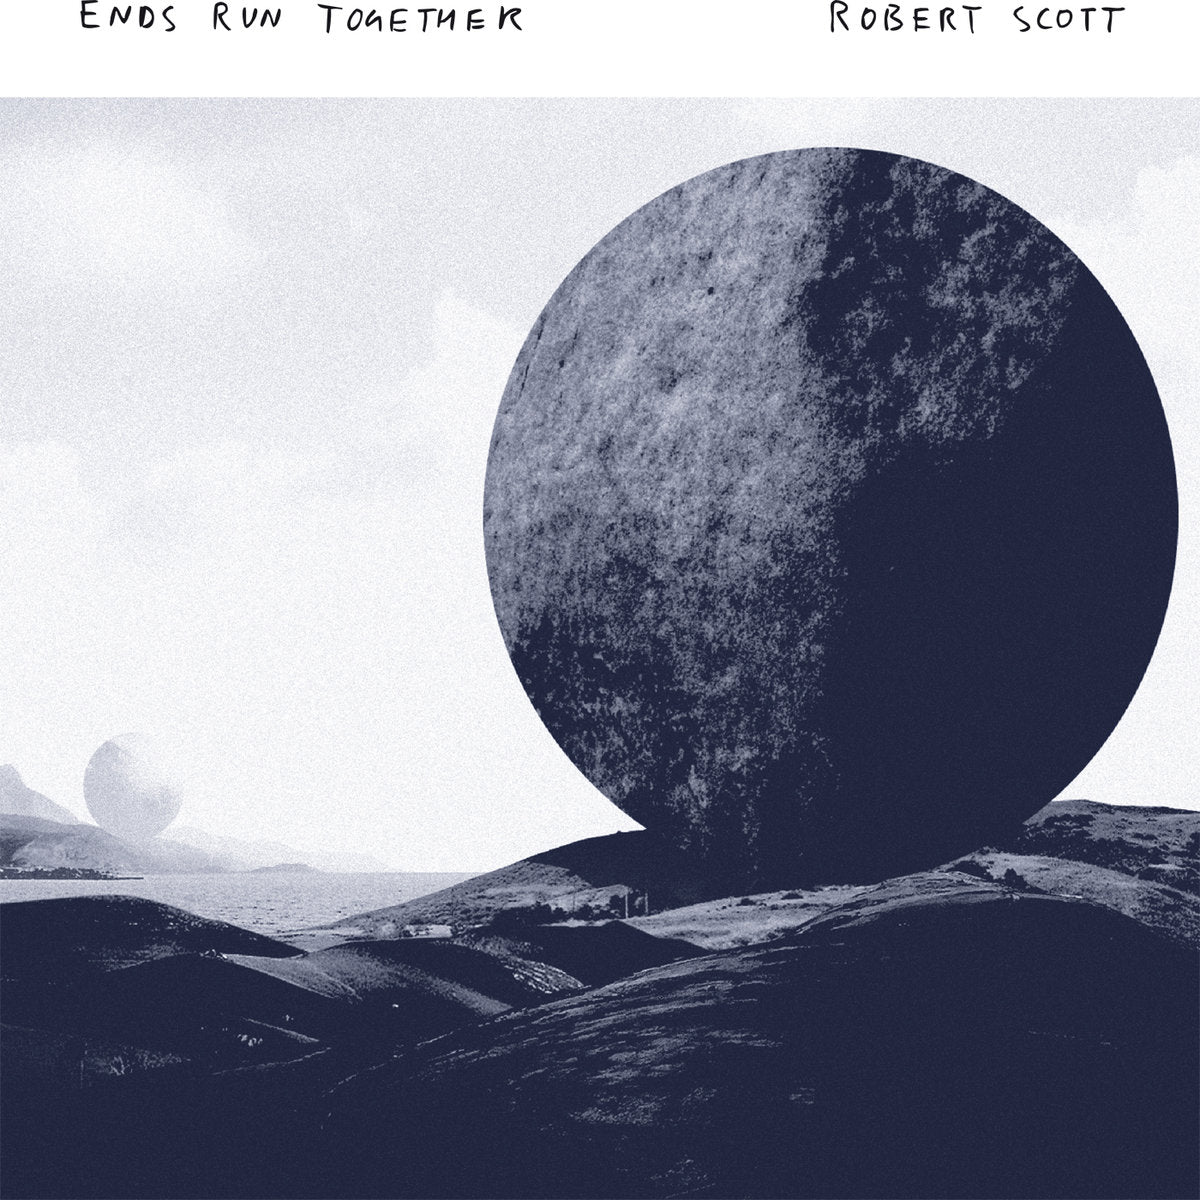 Robert Scott ‎– Ends Run Together